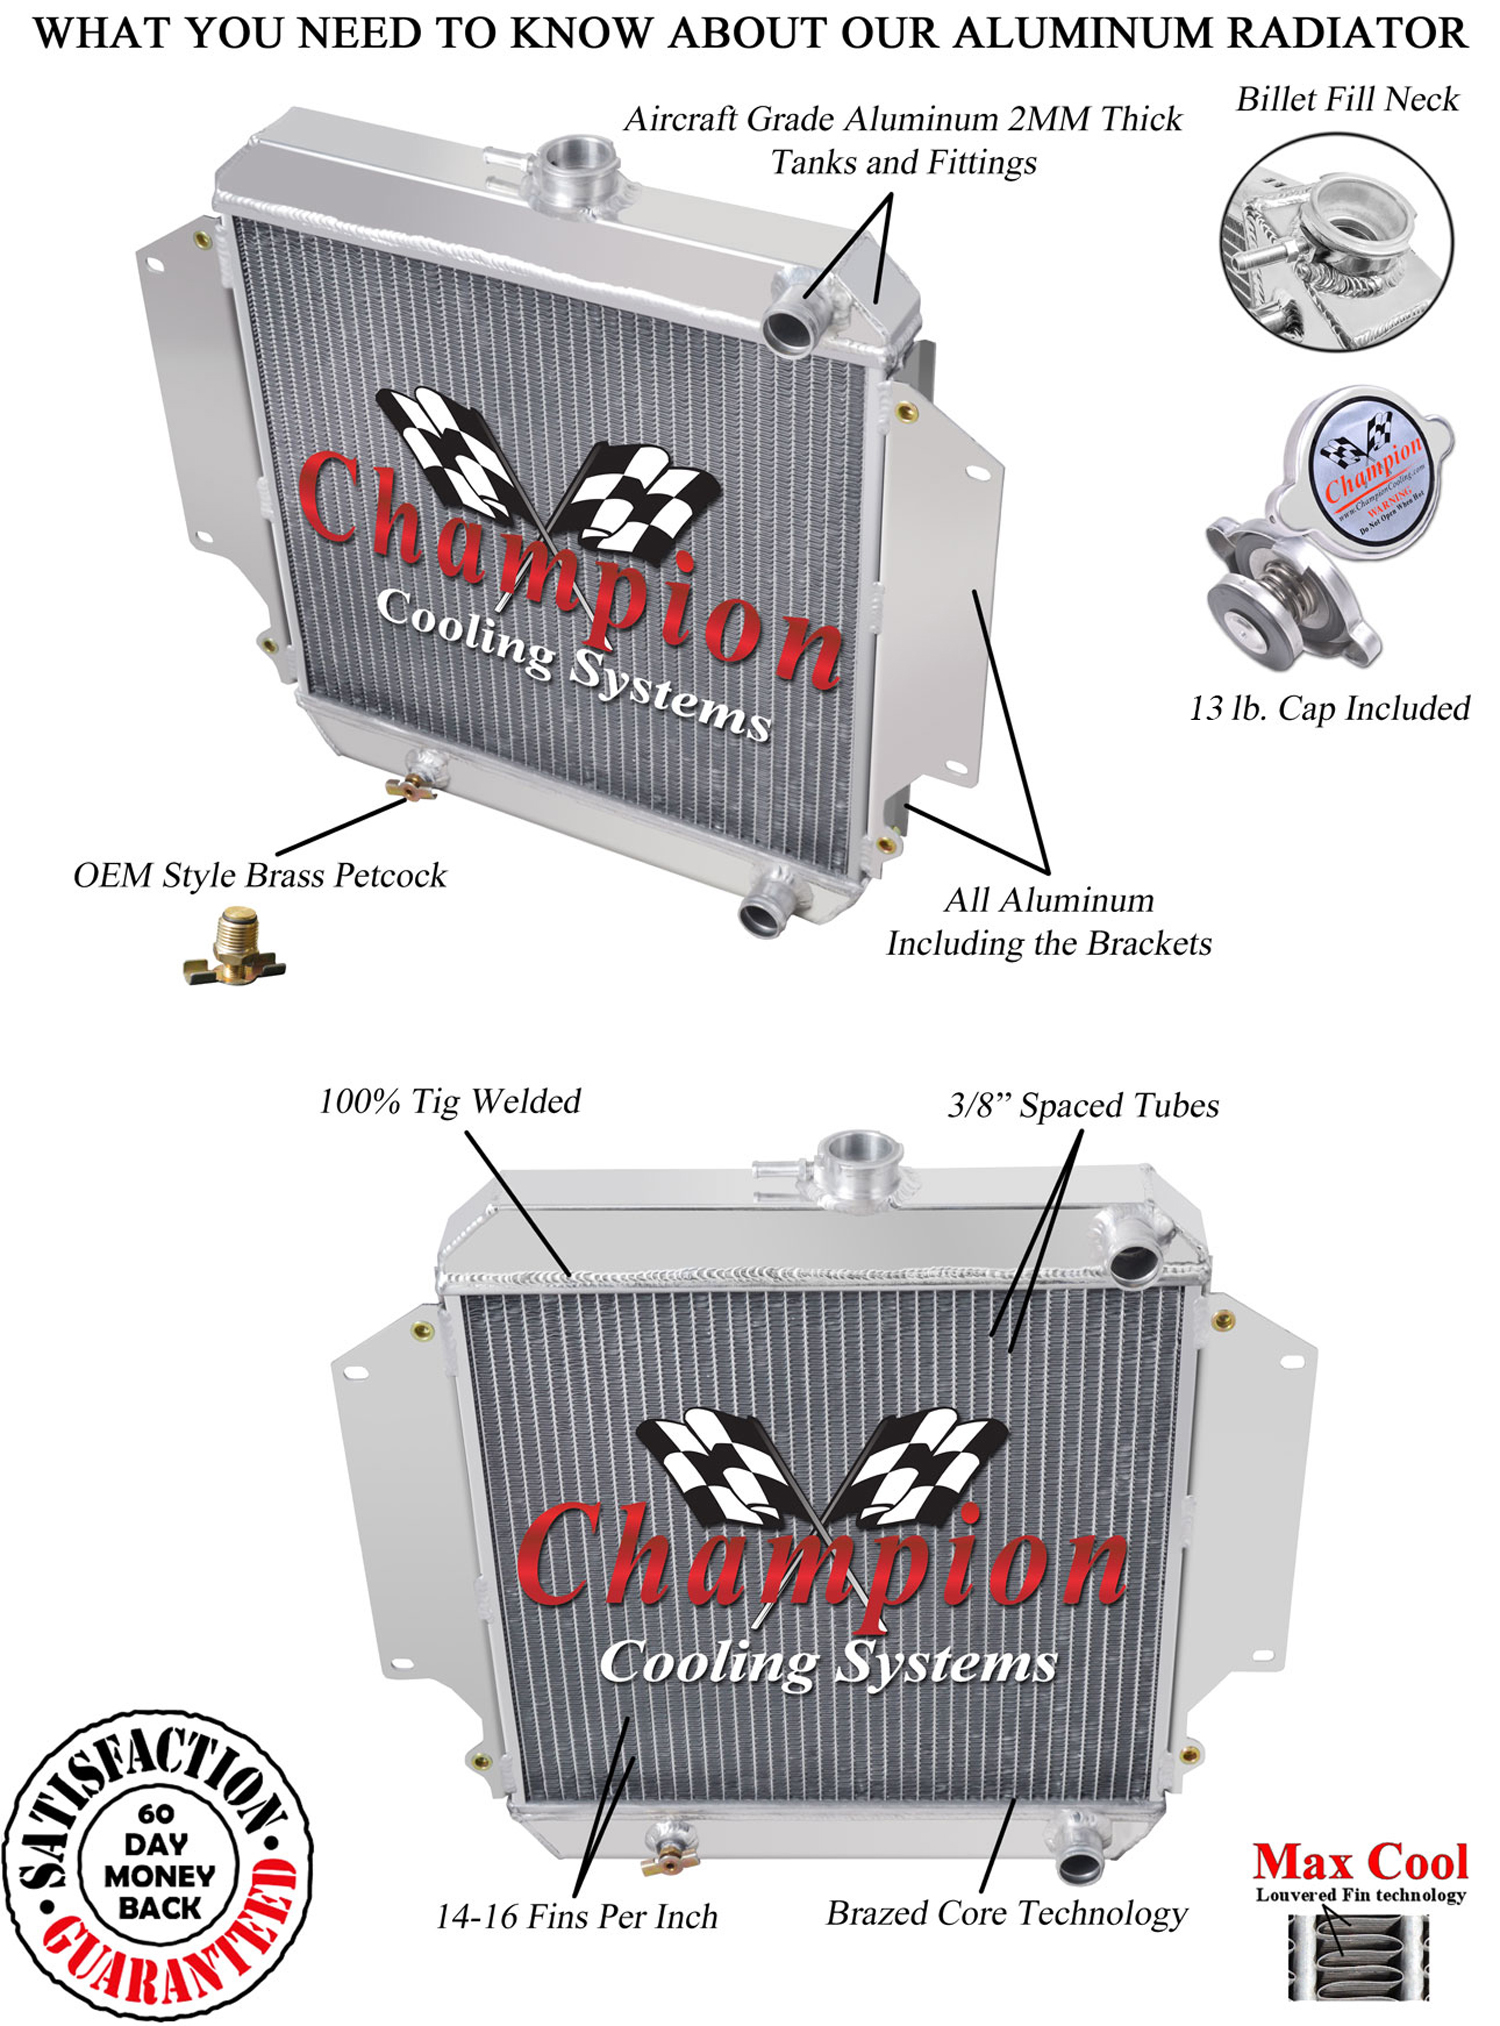 https://www.championcooling.com/photos/Photos%20White/Without%20Fans/170/170_d_w.jpg